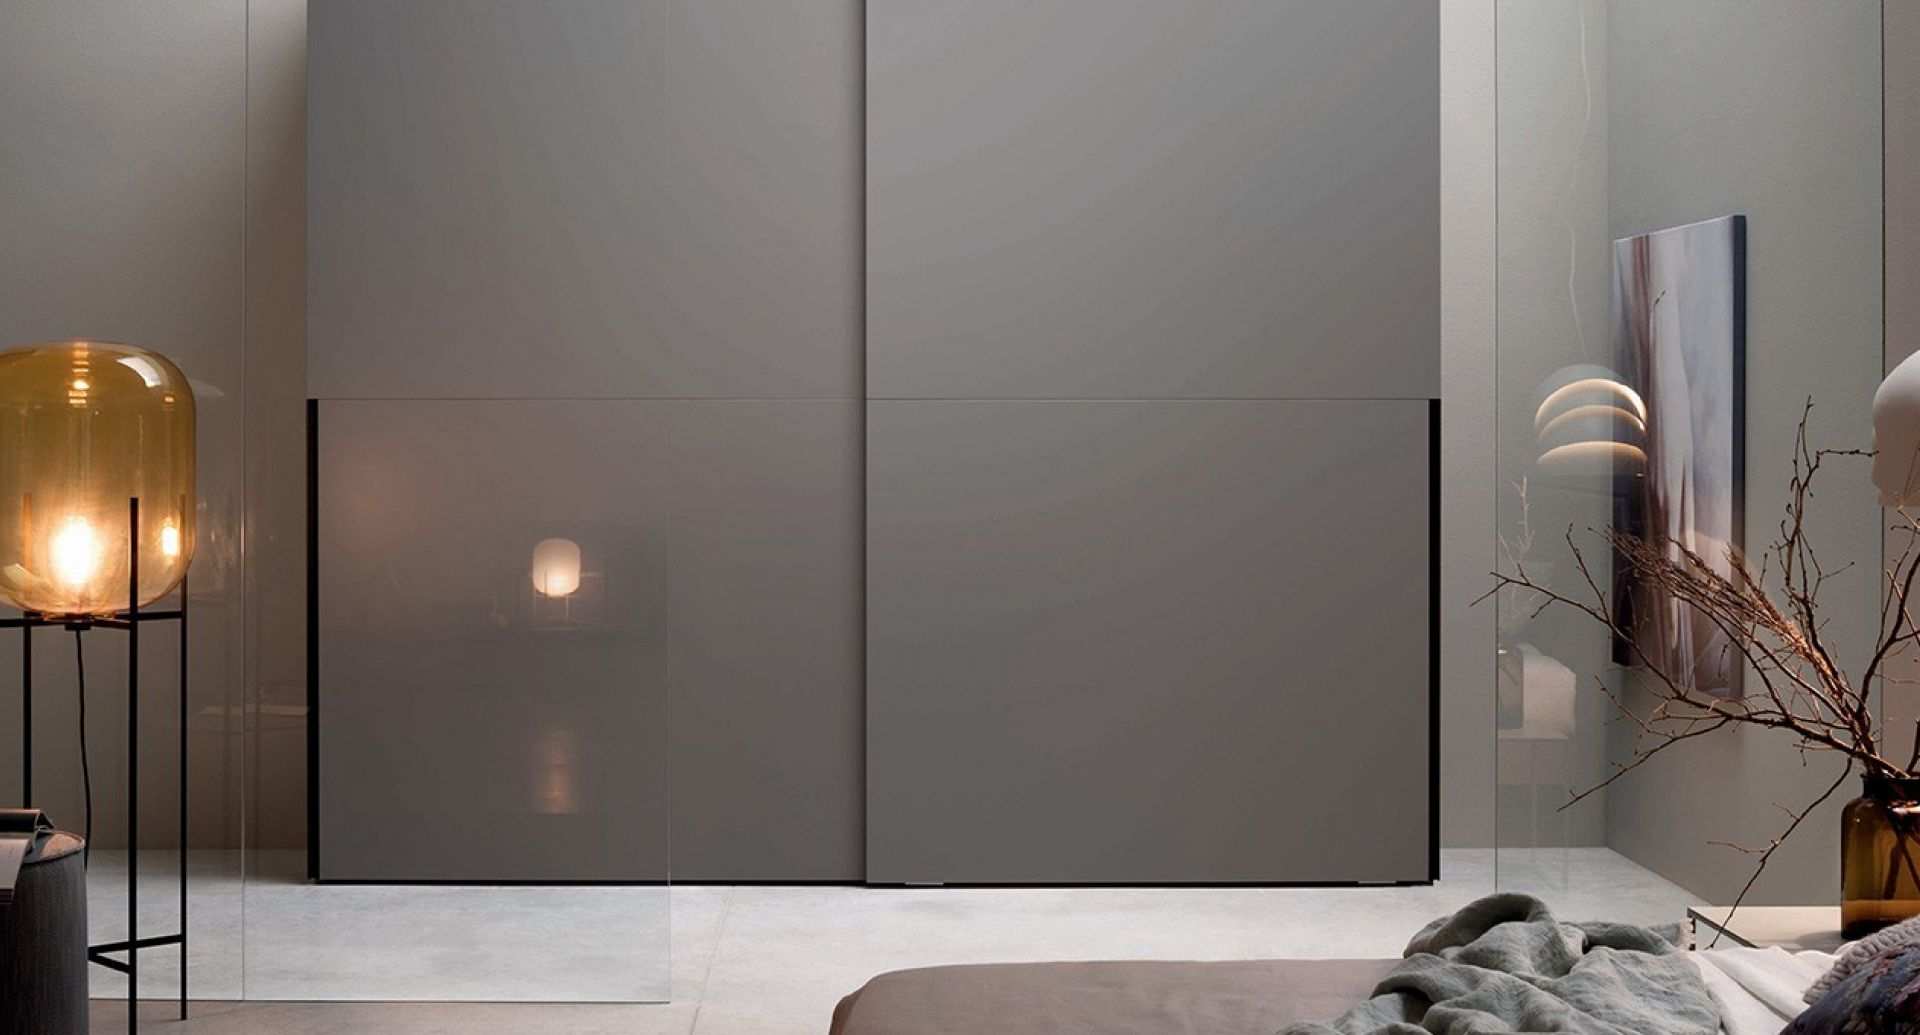 Ντουλάπες Picture sliding door